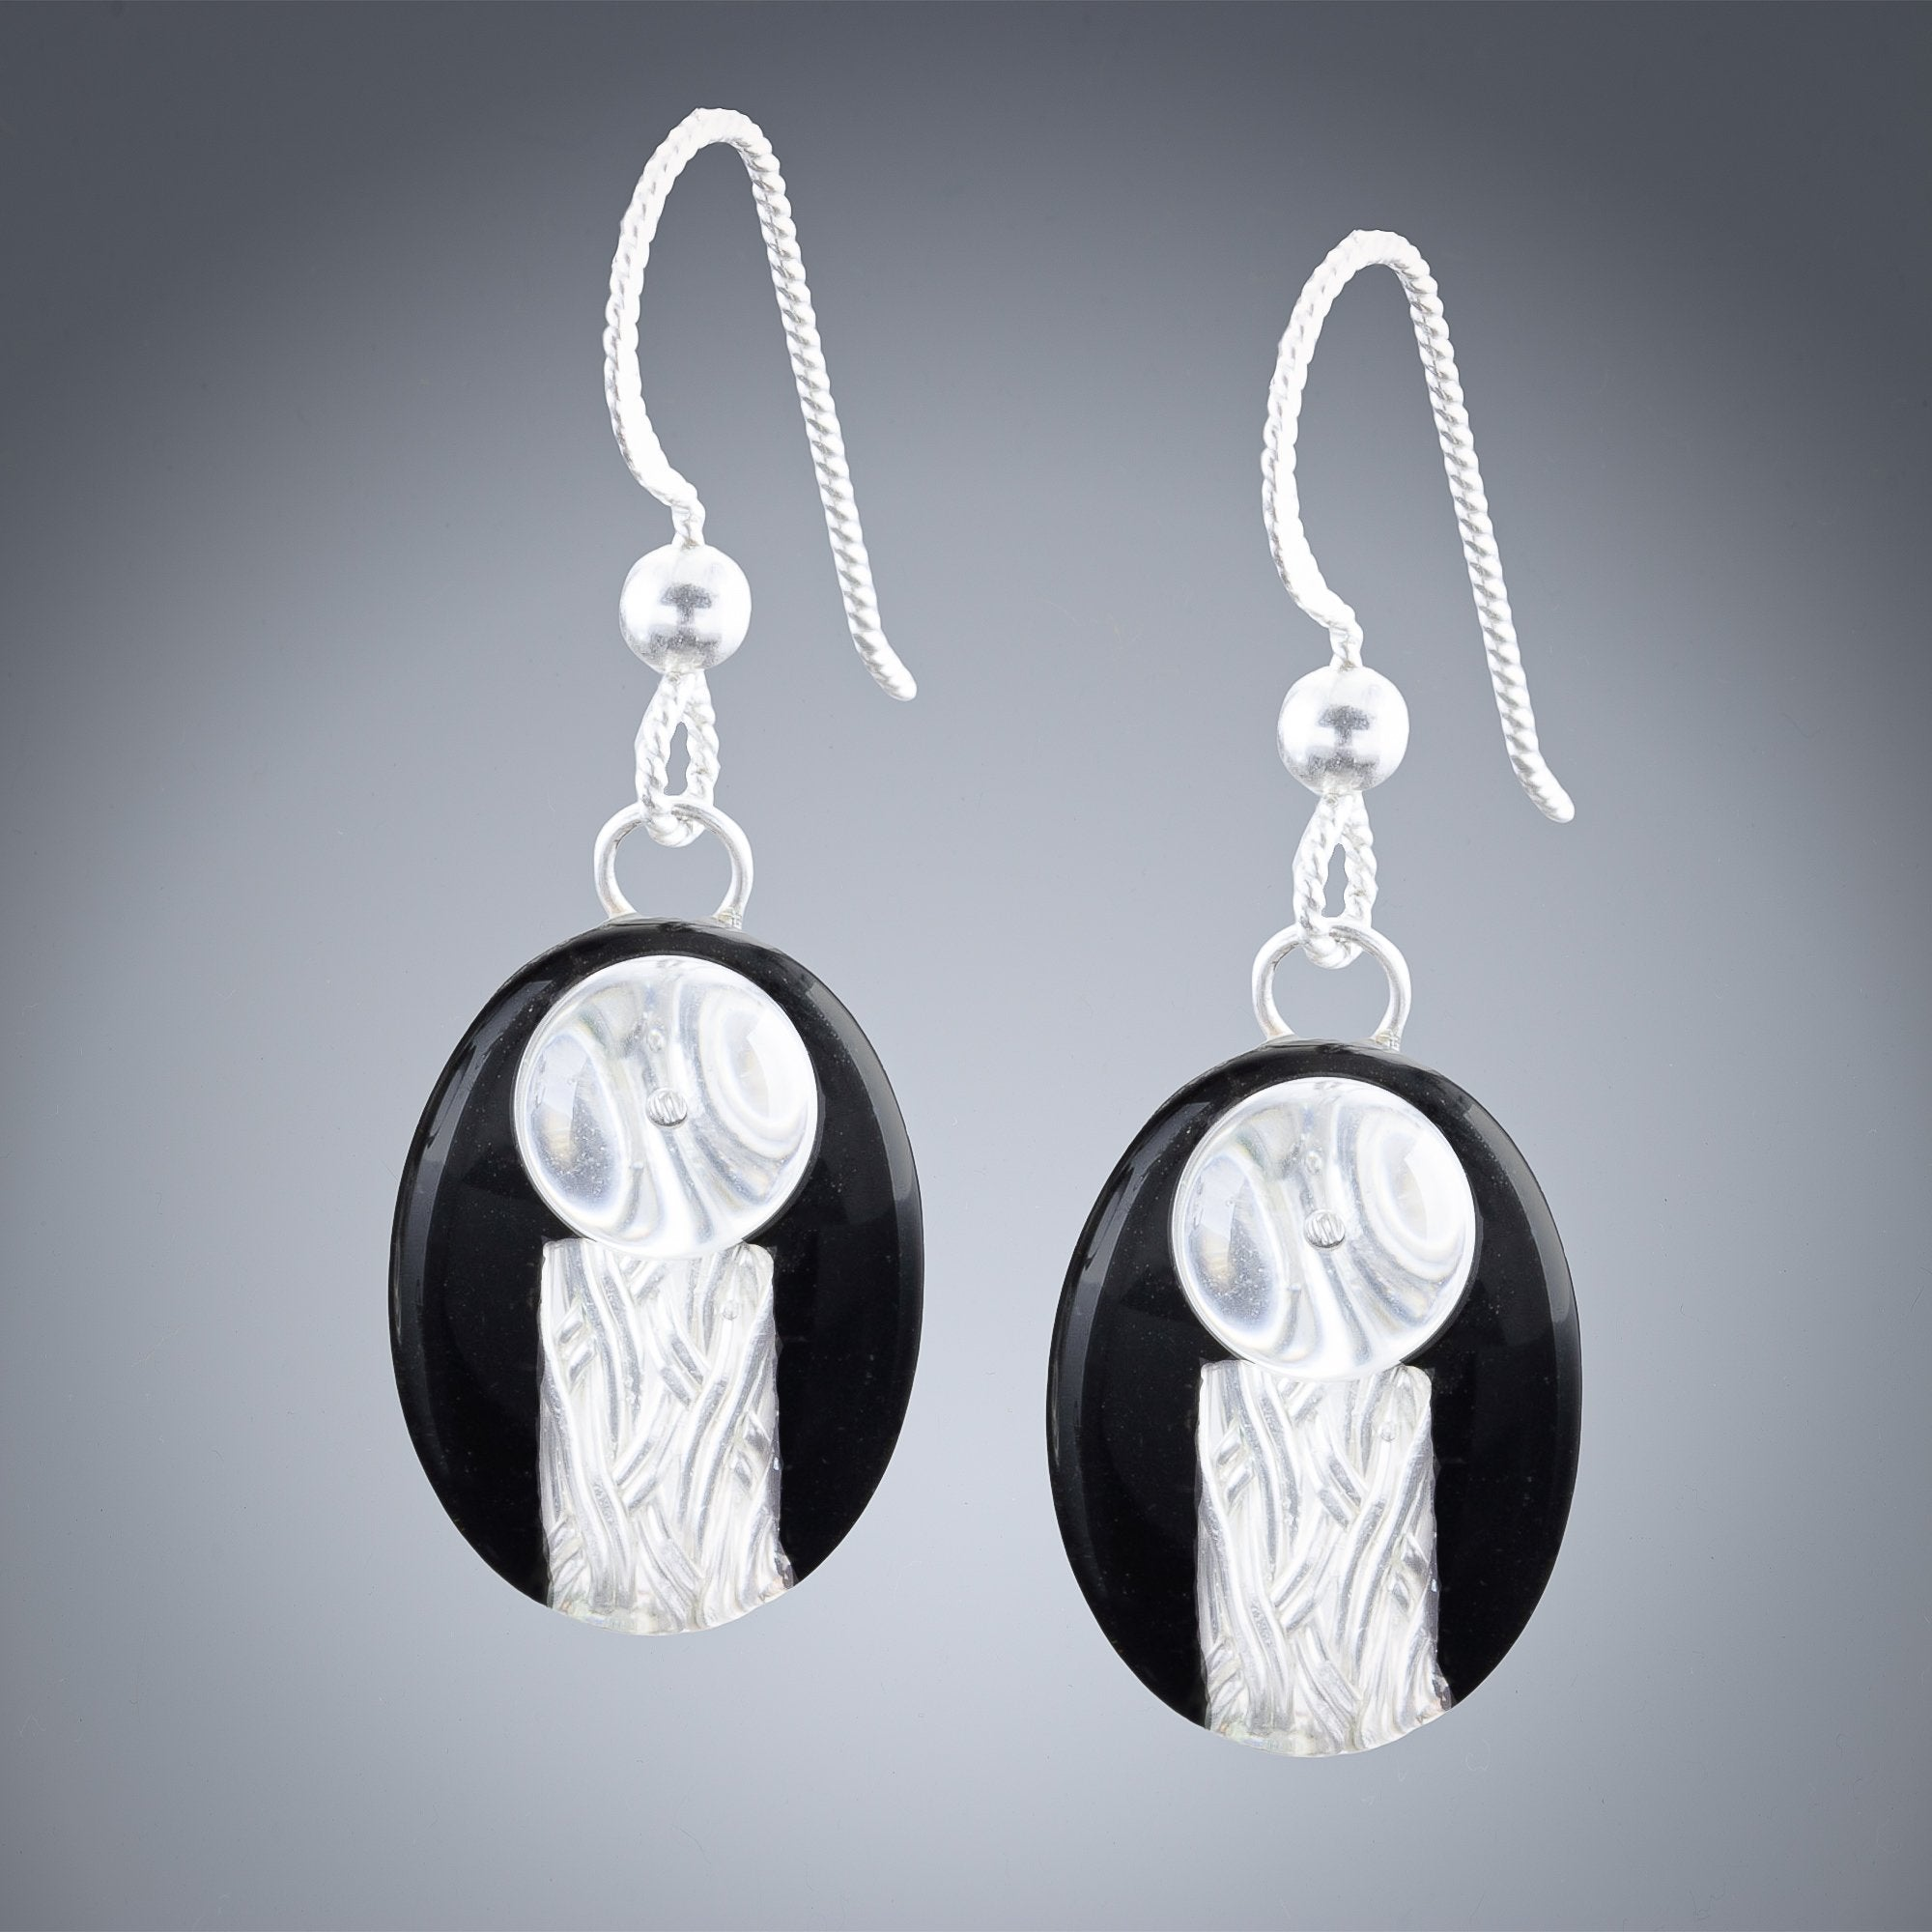 Handwoven Oval Black and Silver Art Deco Inspired Earrings in Sterling Silver